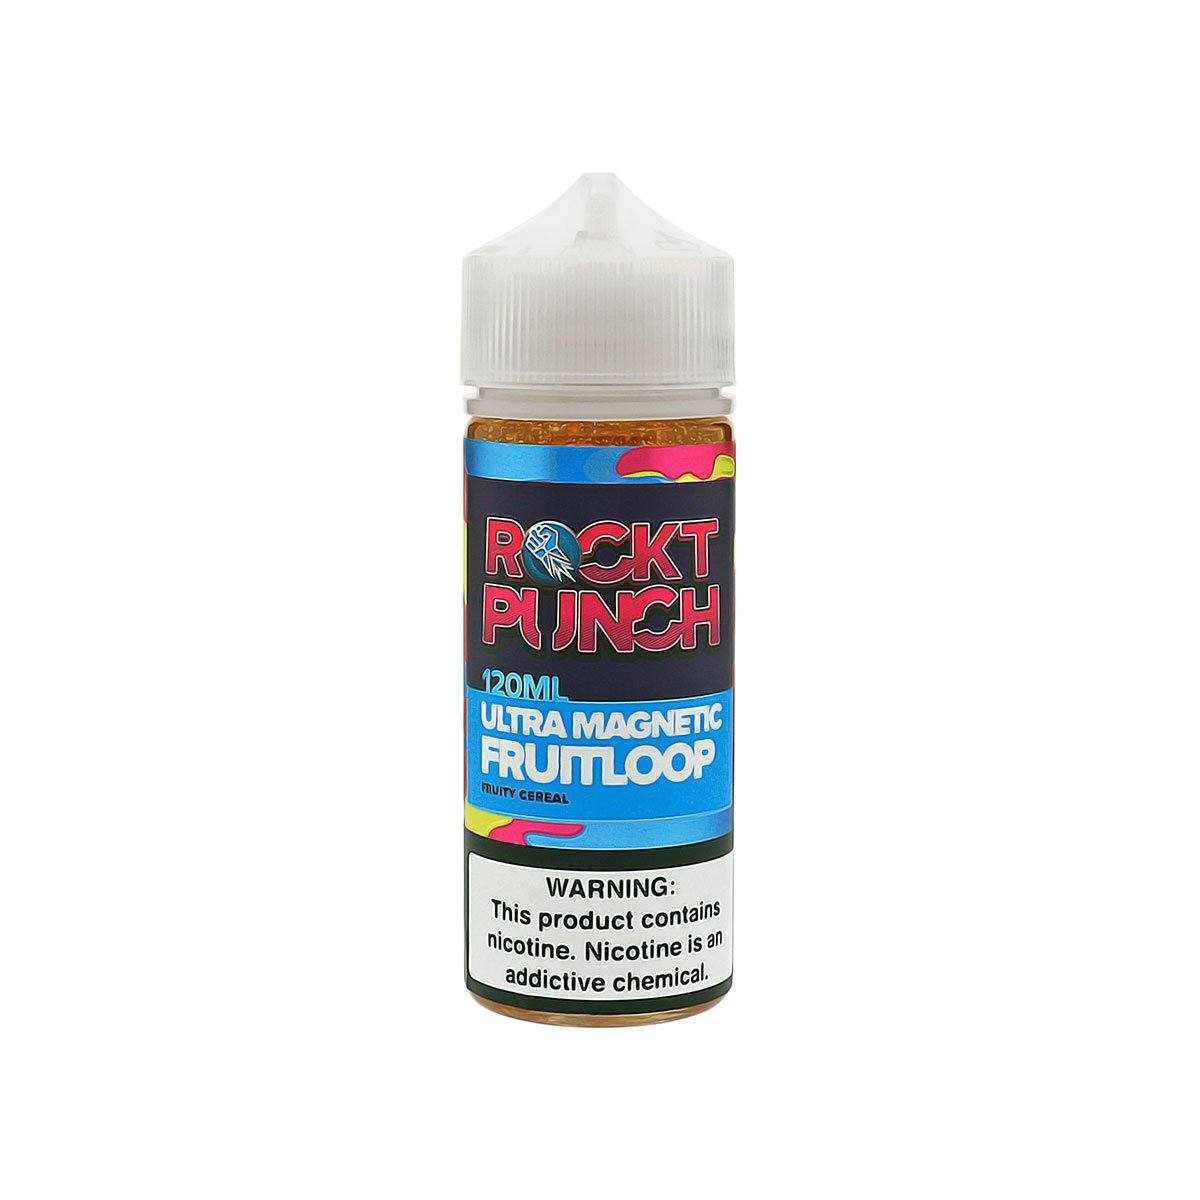 ROCKT PUNCH Magnetic Fruit Loop E-Juice Bottle